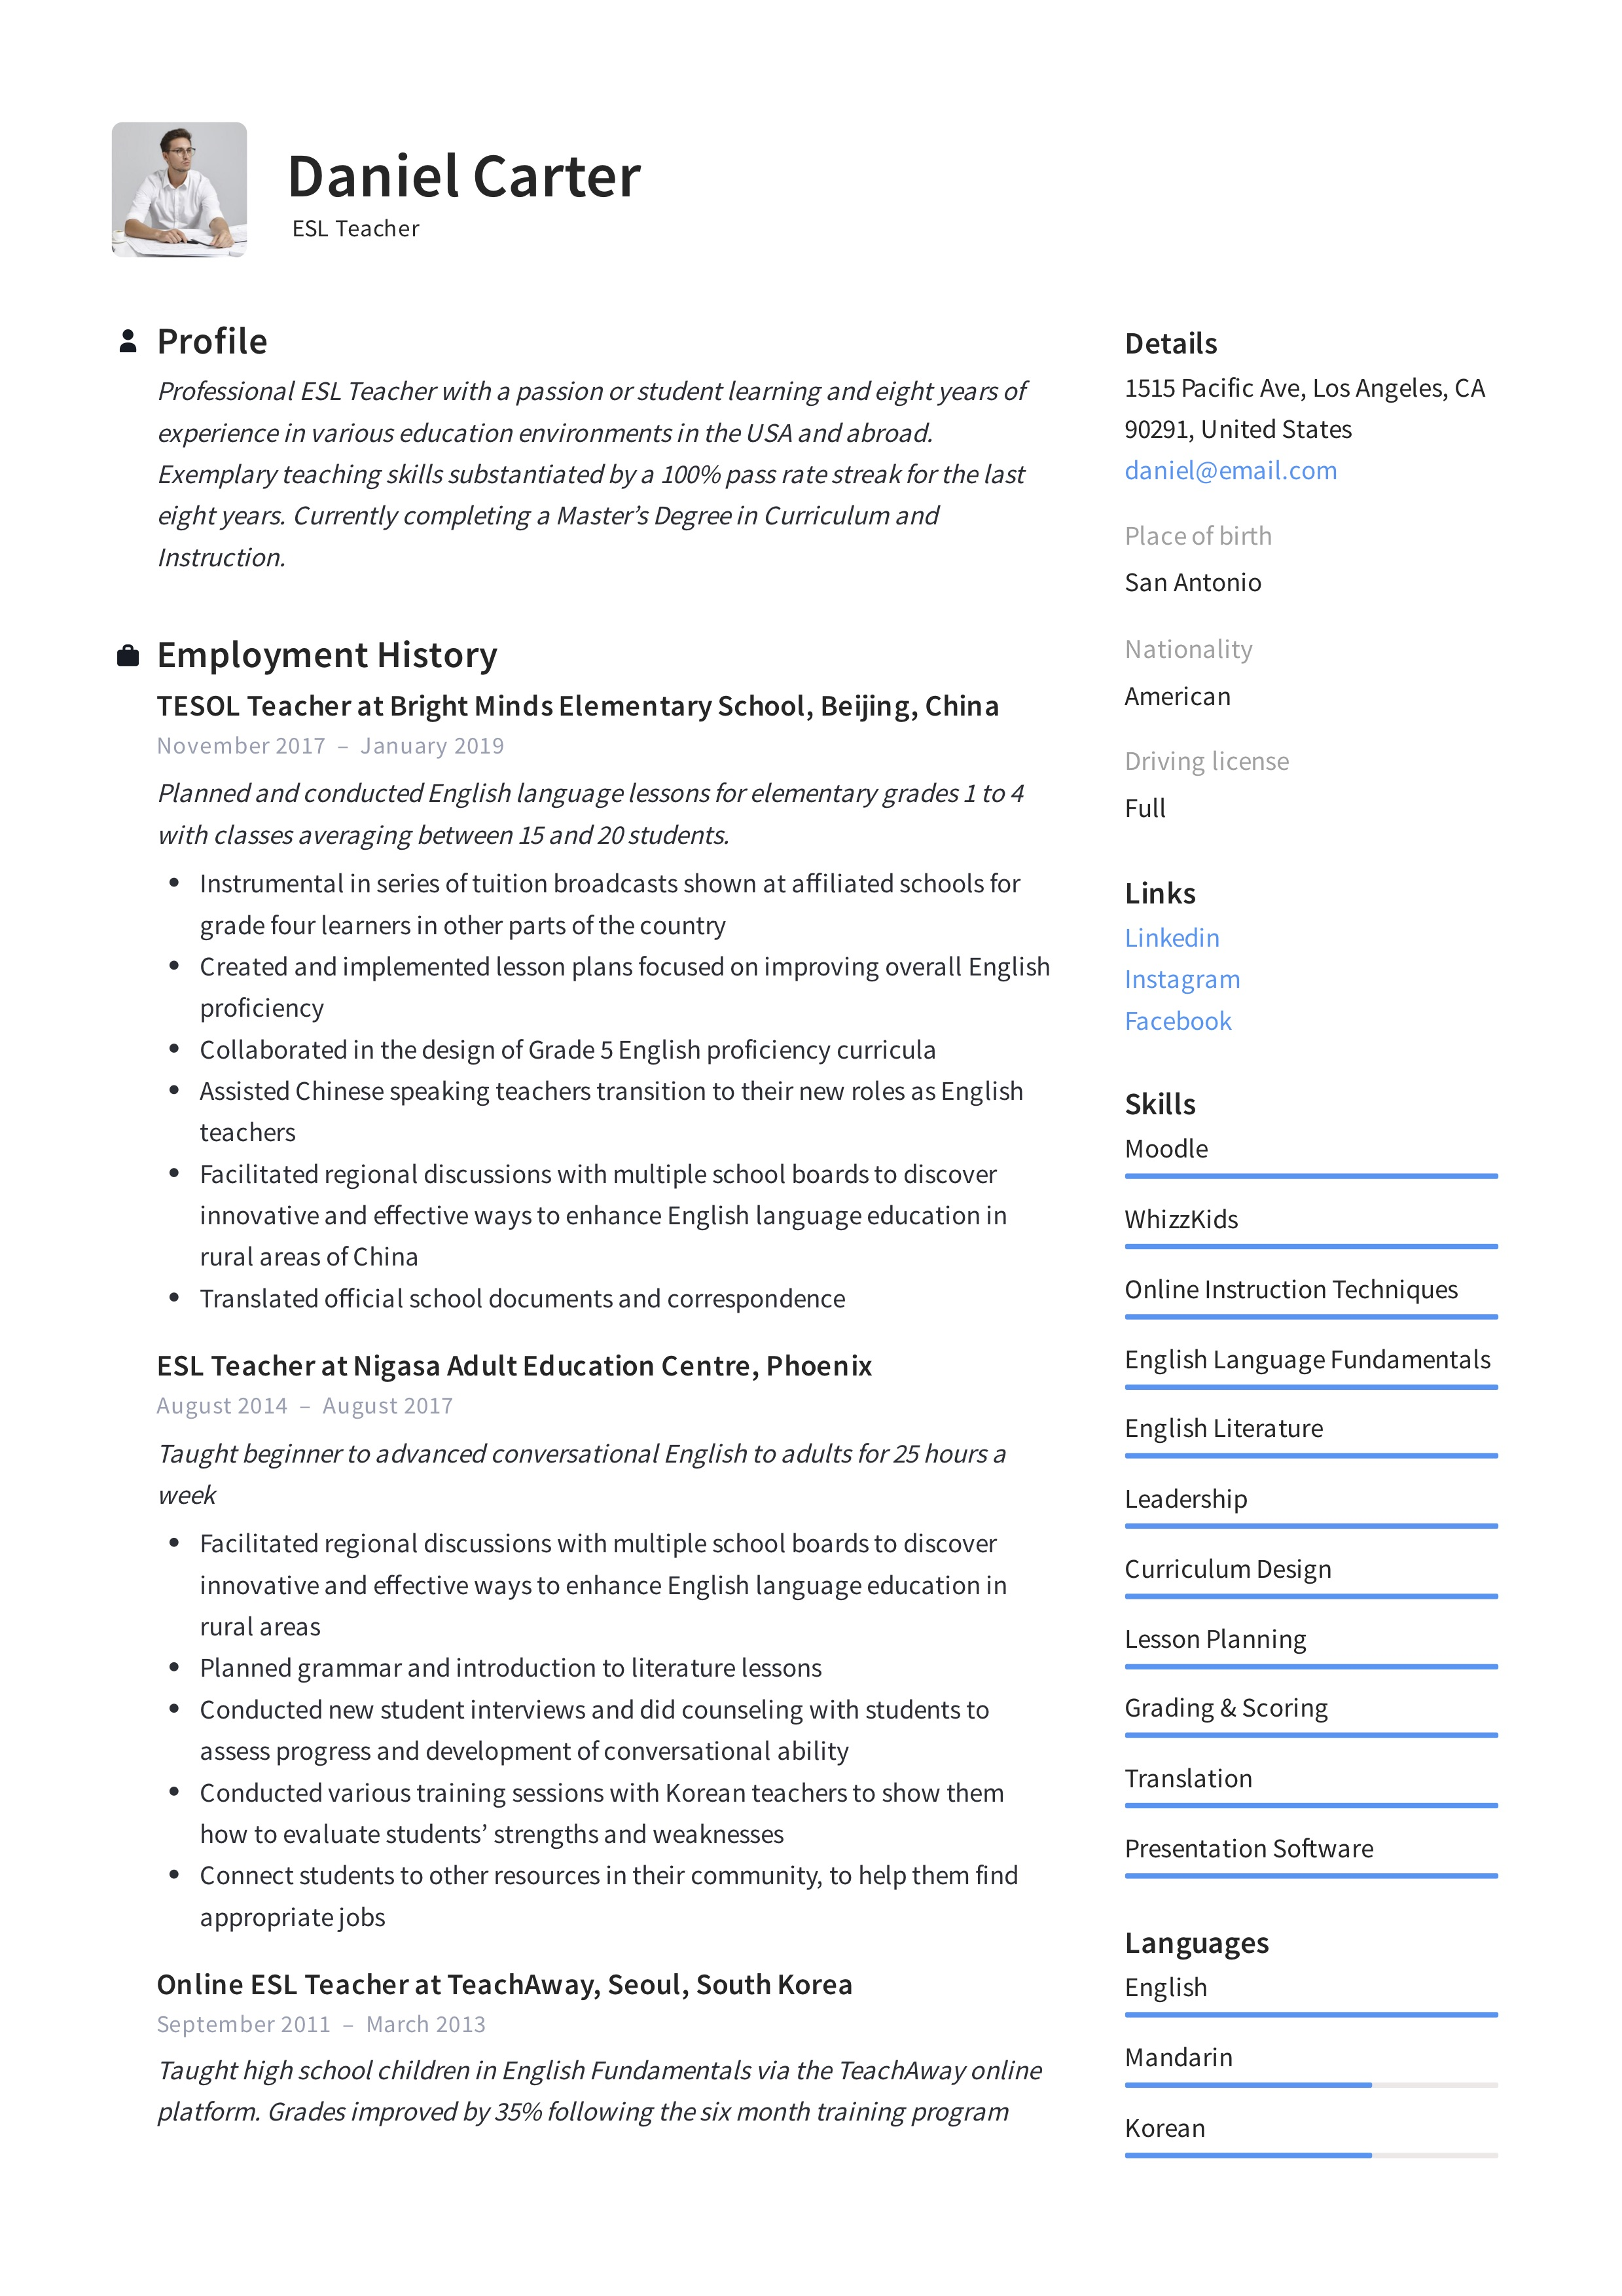 ESL Teacher Resume & Writing Guide +12 Free Templates | 2020